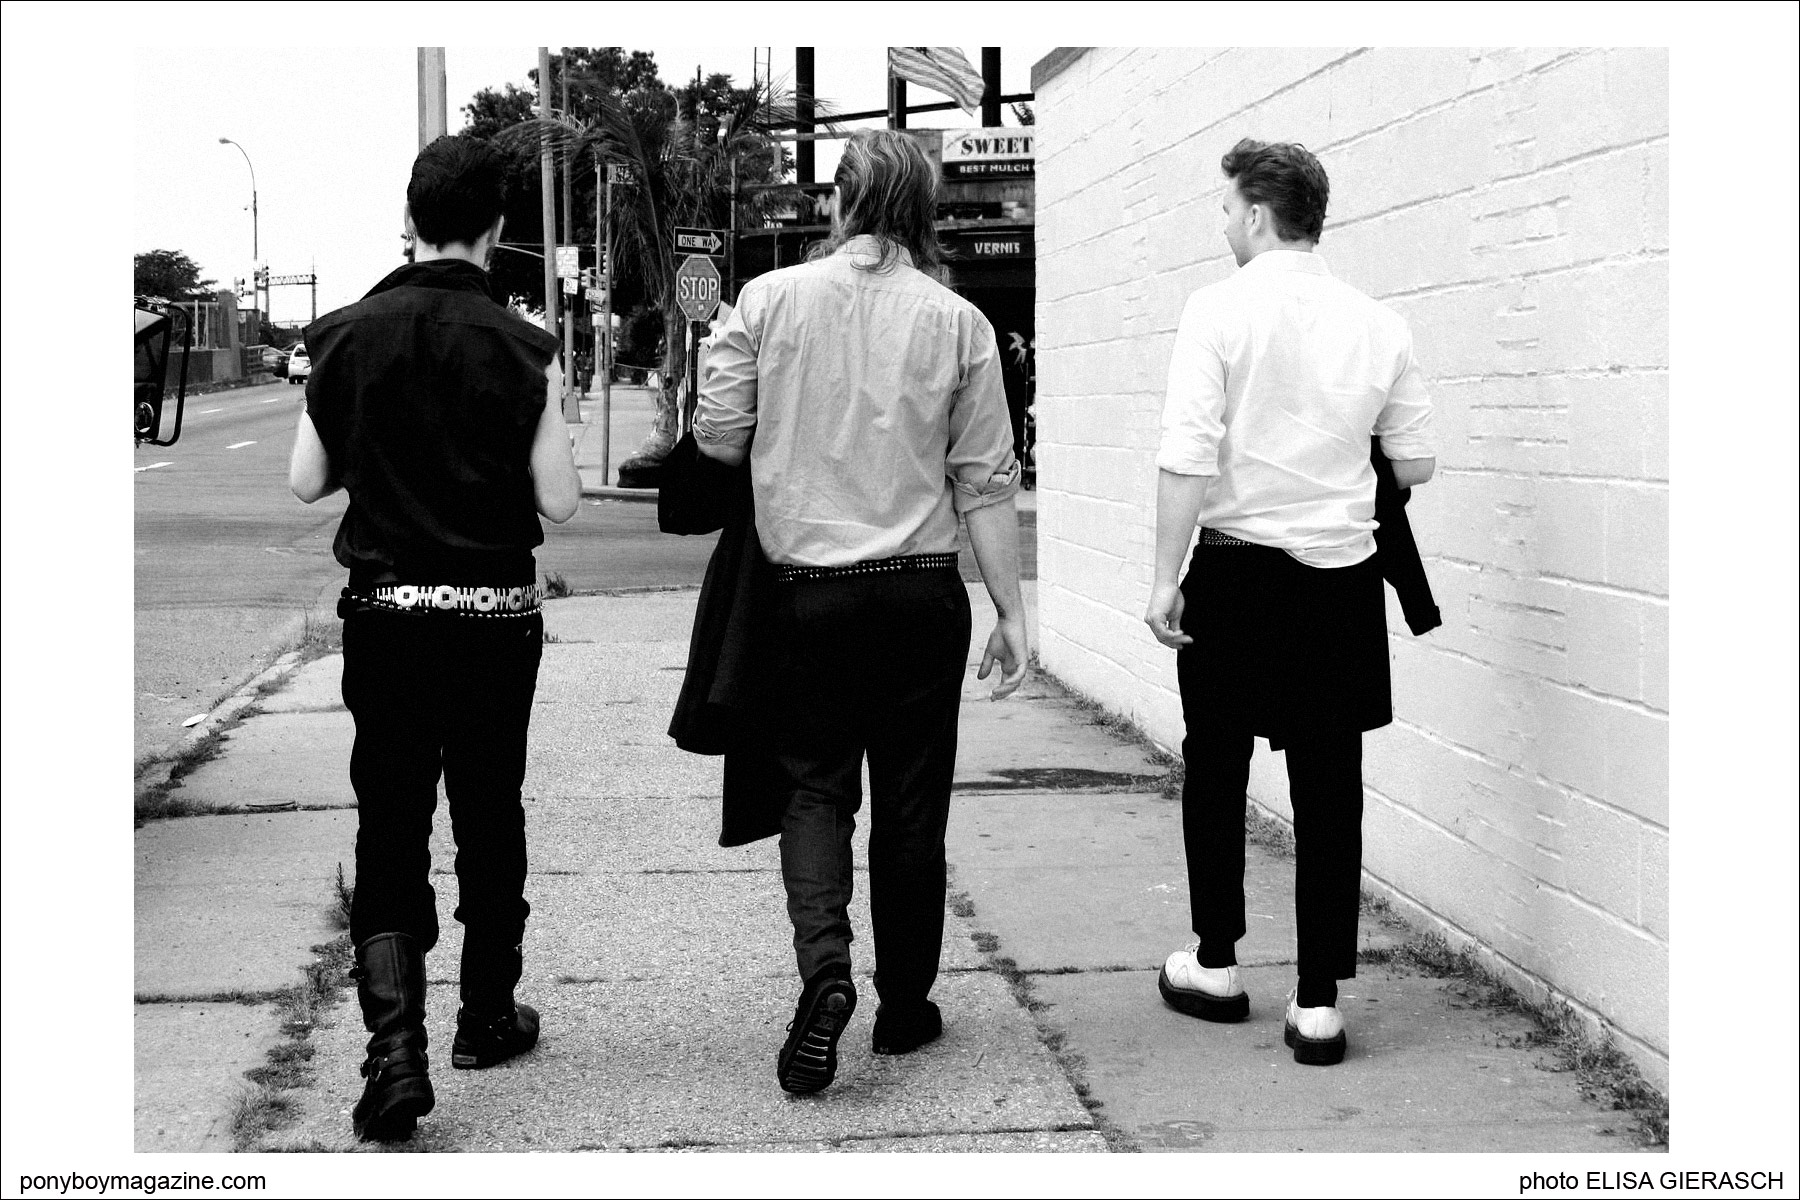 Photo of teddy boy band Furious by Elisa Gierasch. Ponyboy Magazine.